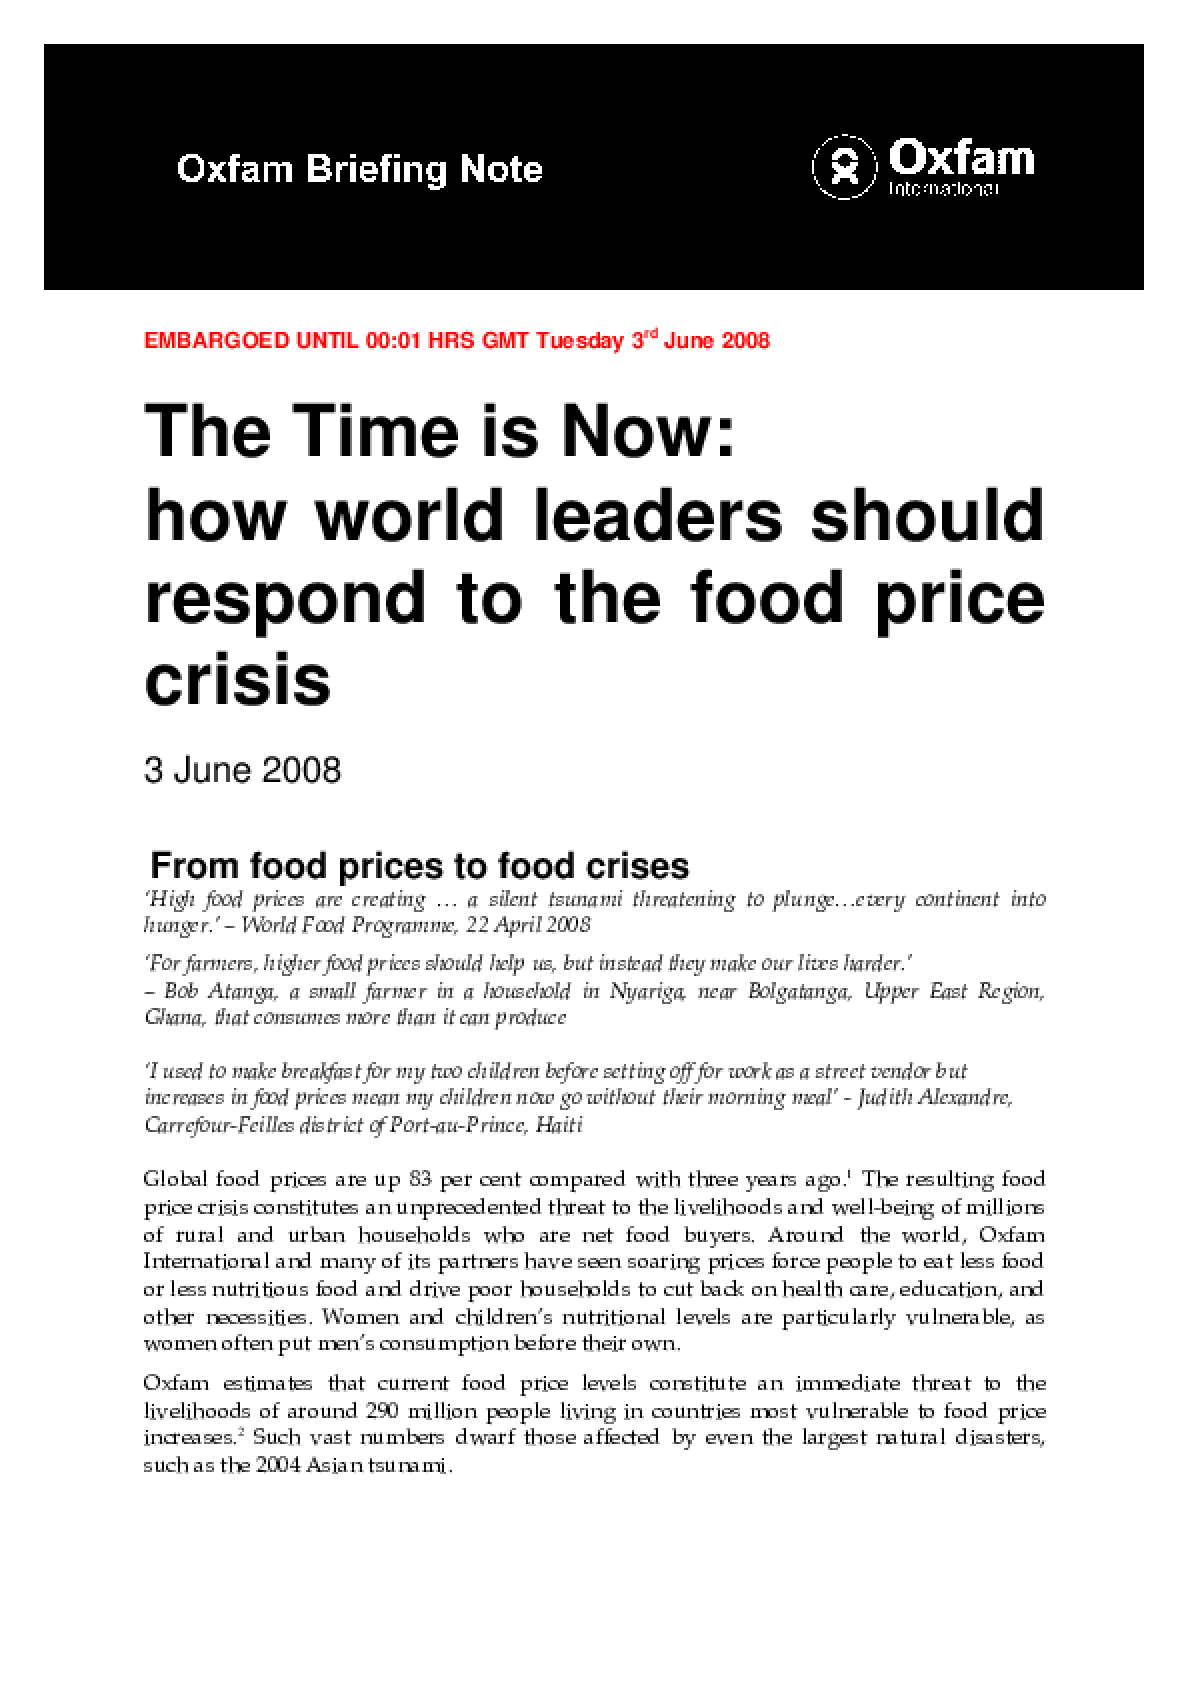 The Time is Now: How world leaders should respond to the food price crisis